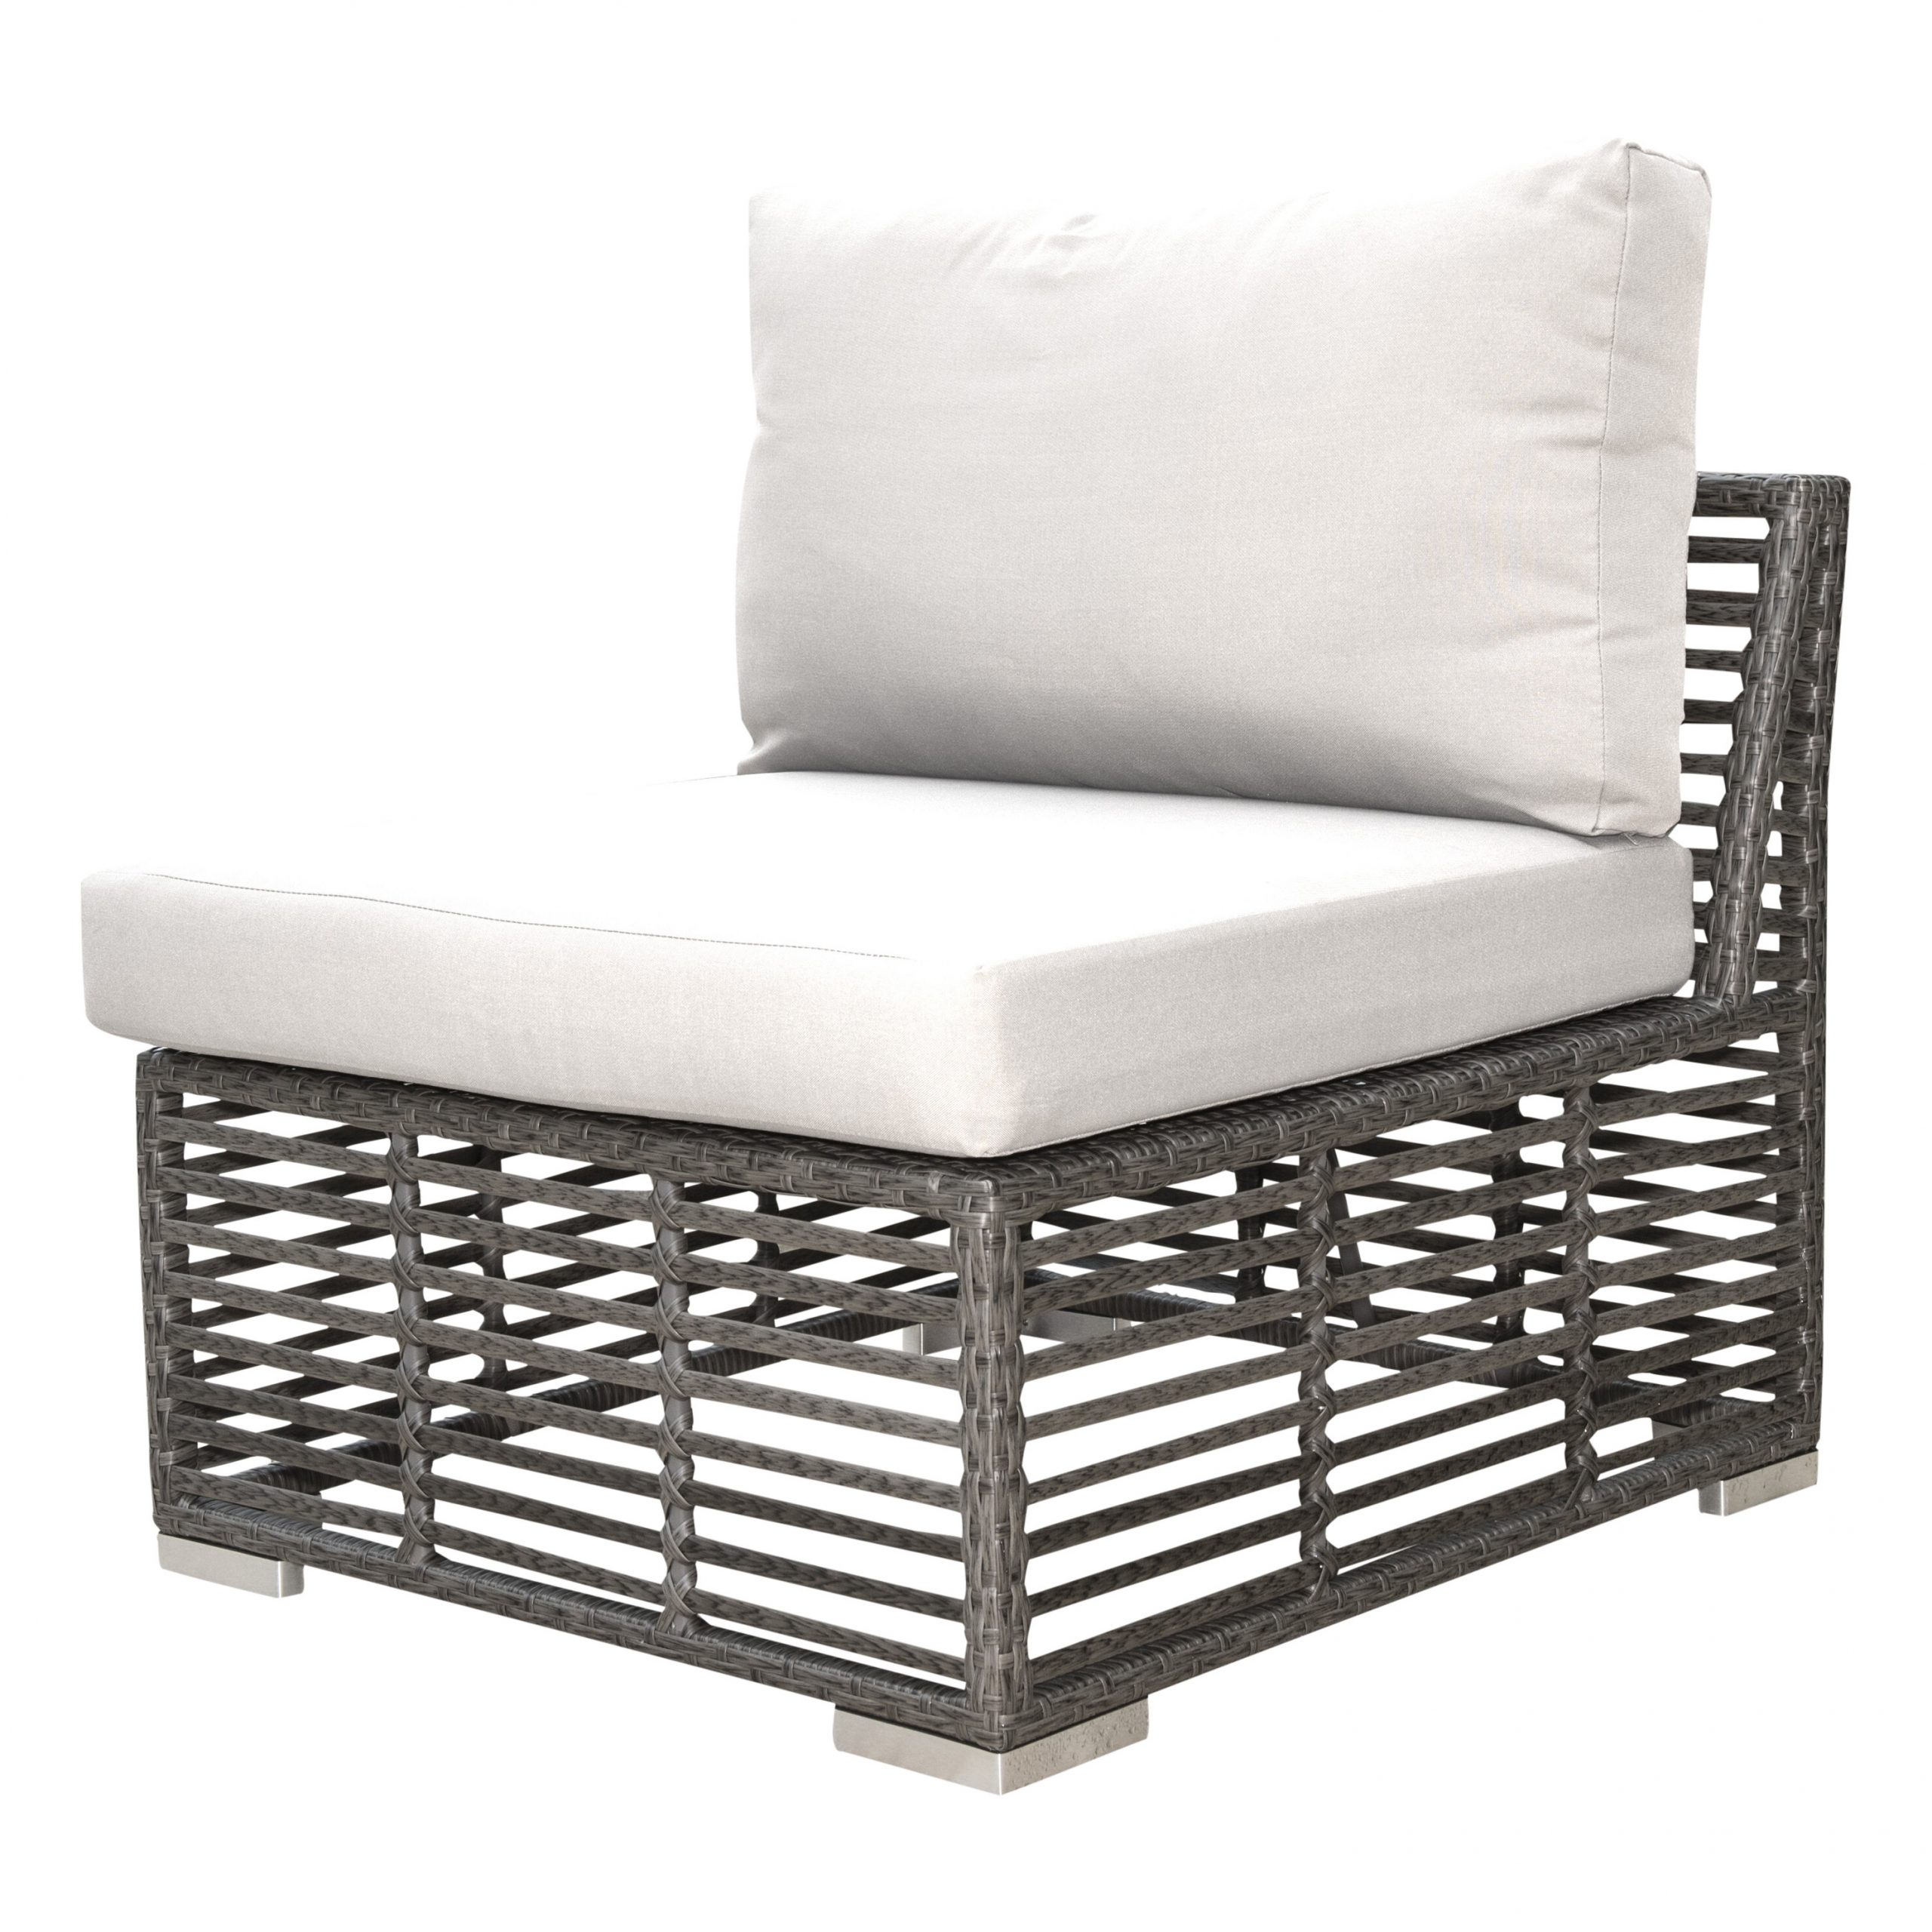 Oceanside Outdoor Wicker Loveseats With Cushions Throughout Trendy Graphite Modular Patio Chair With Cushion (View 14 of 25)